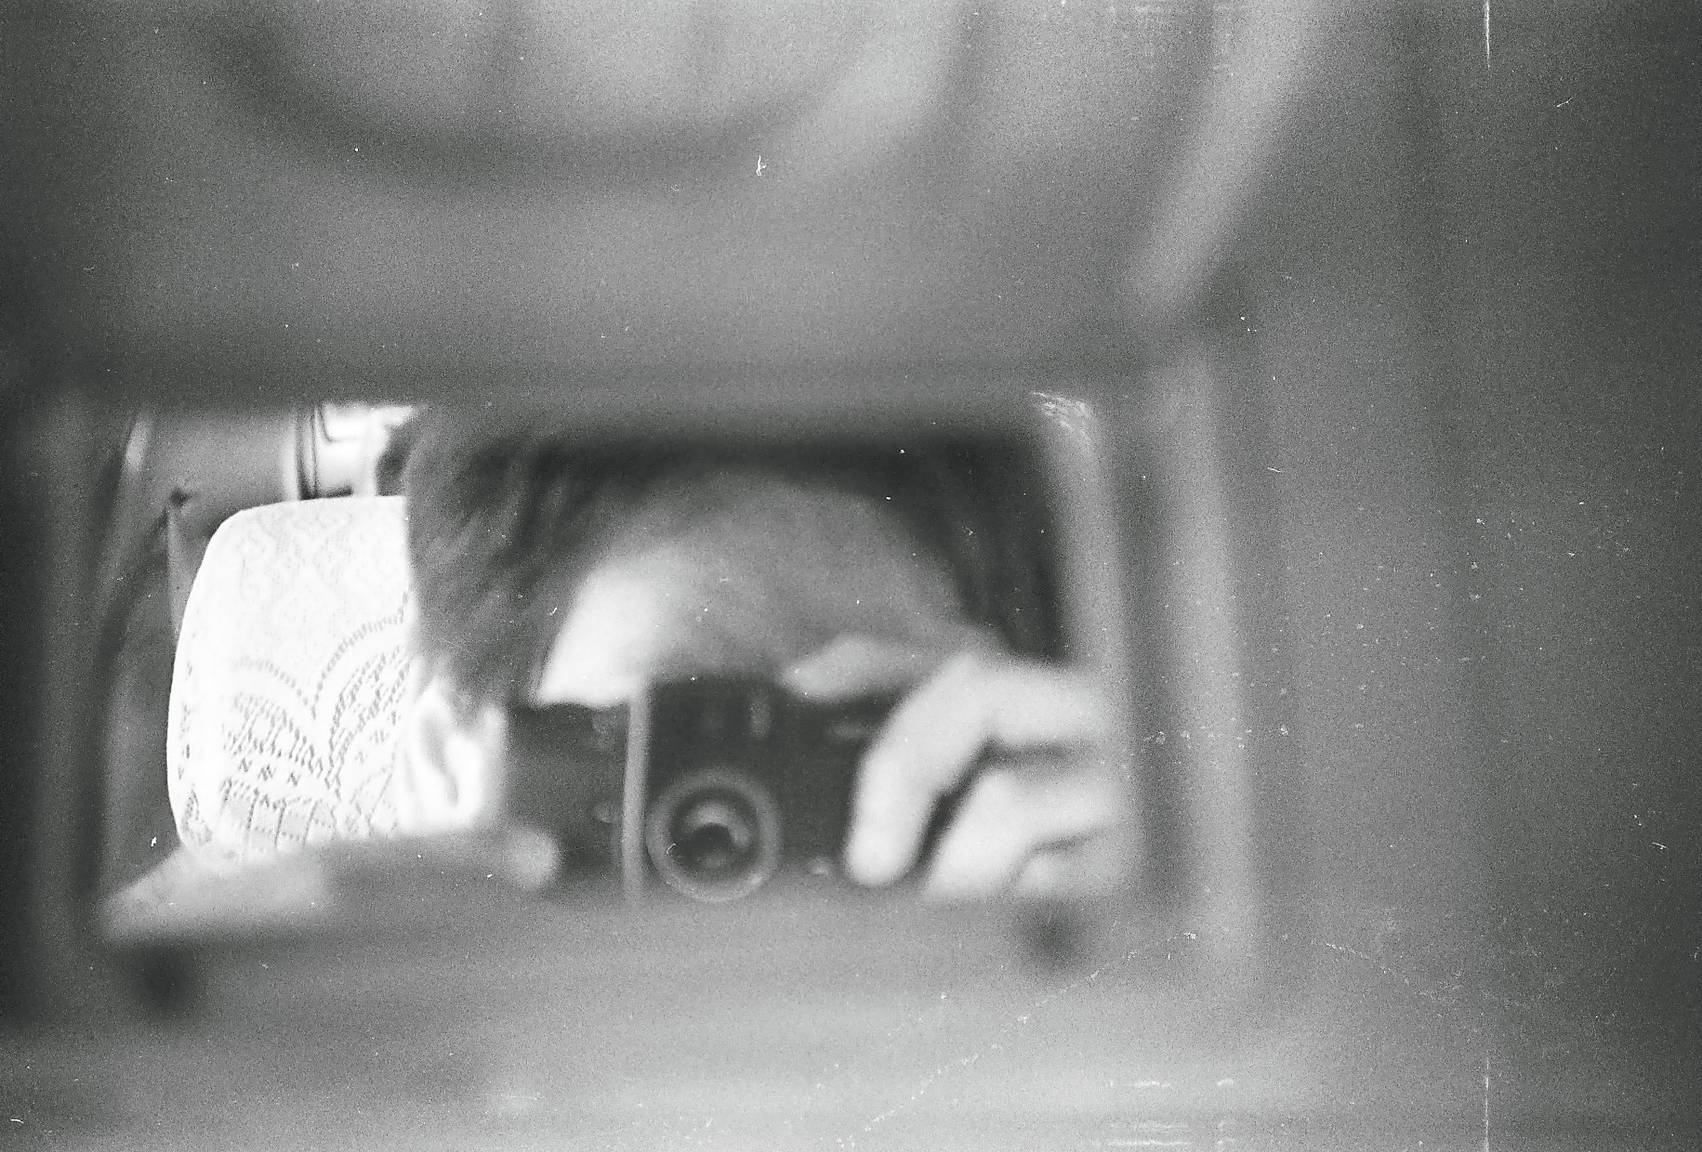 Fuji Neopan SS 35mm 100 iso user review · Lomography